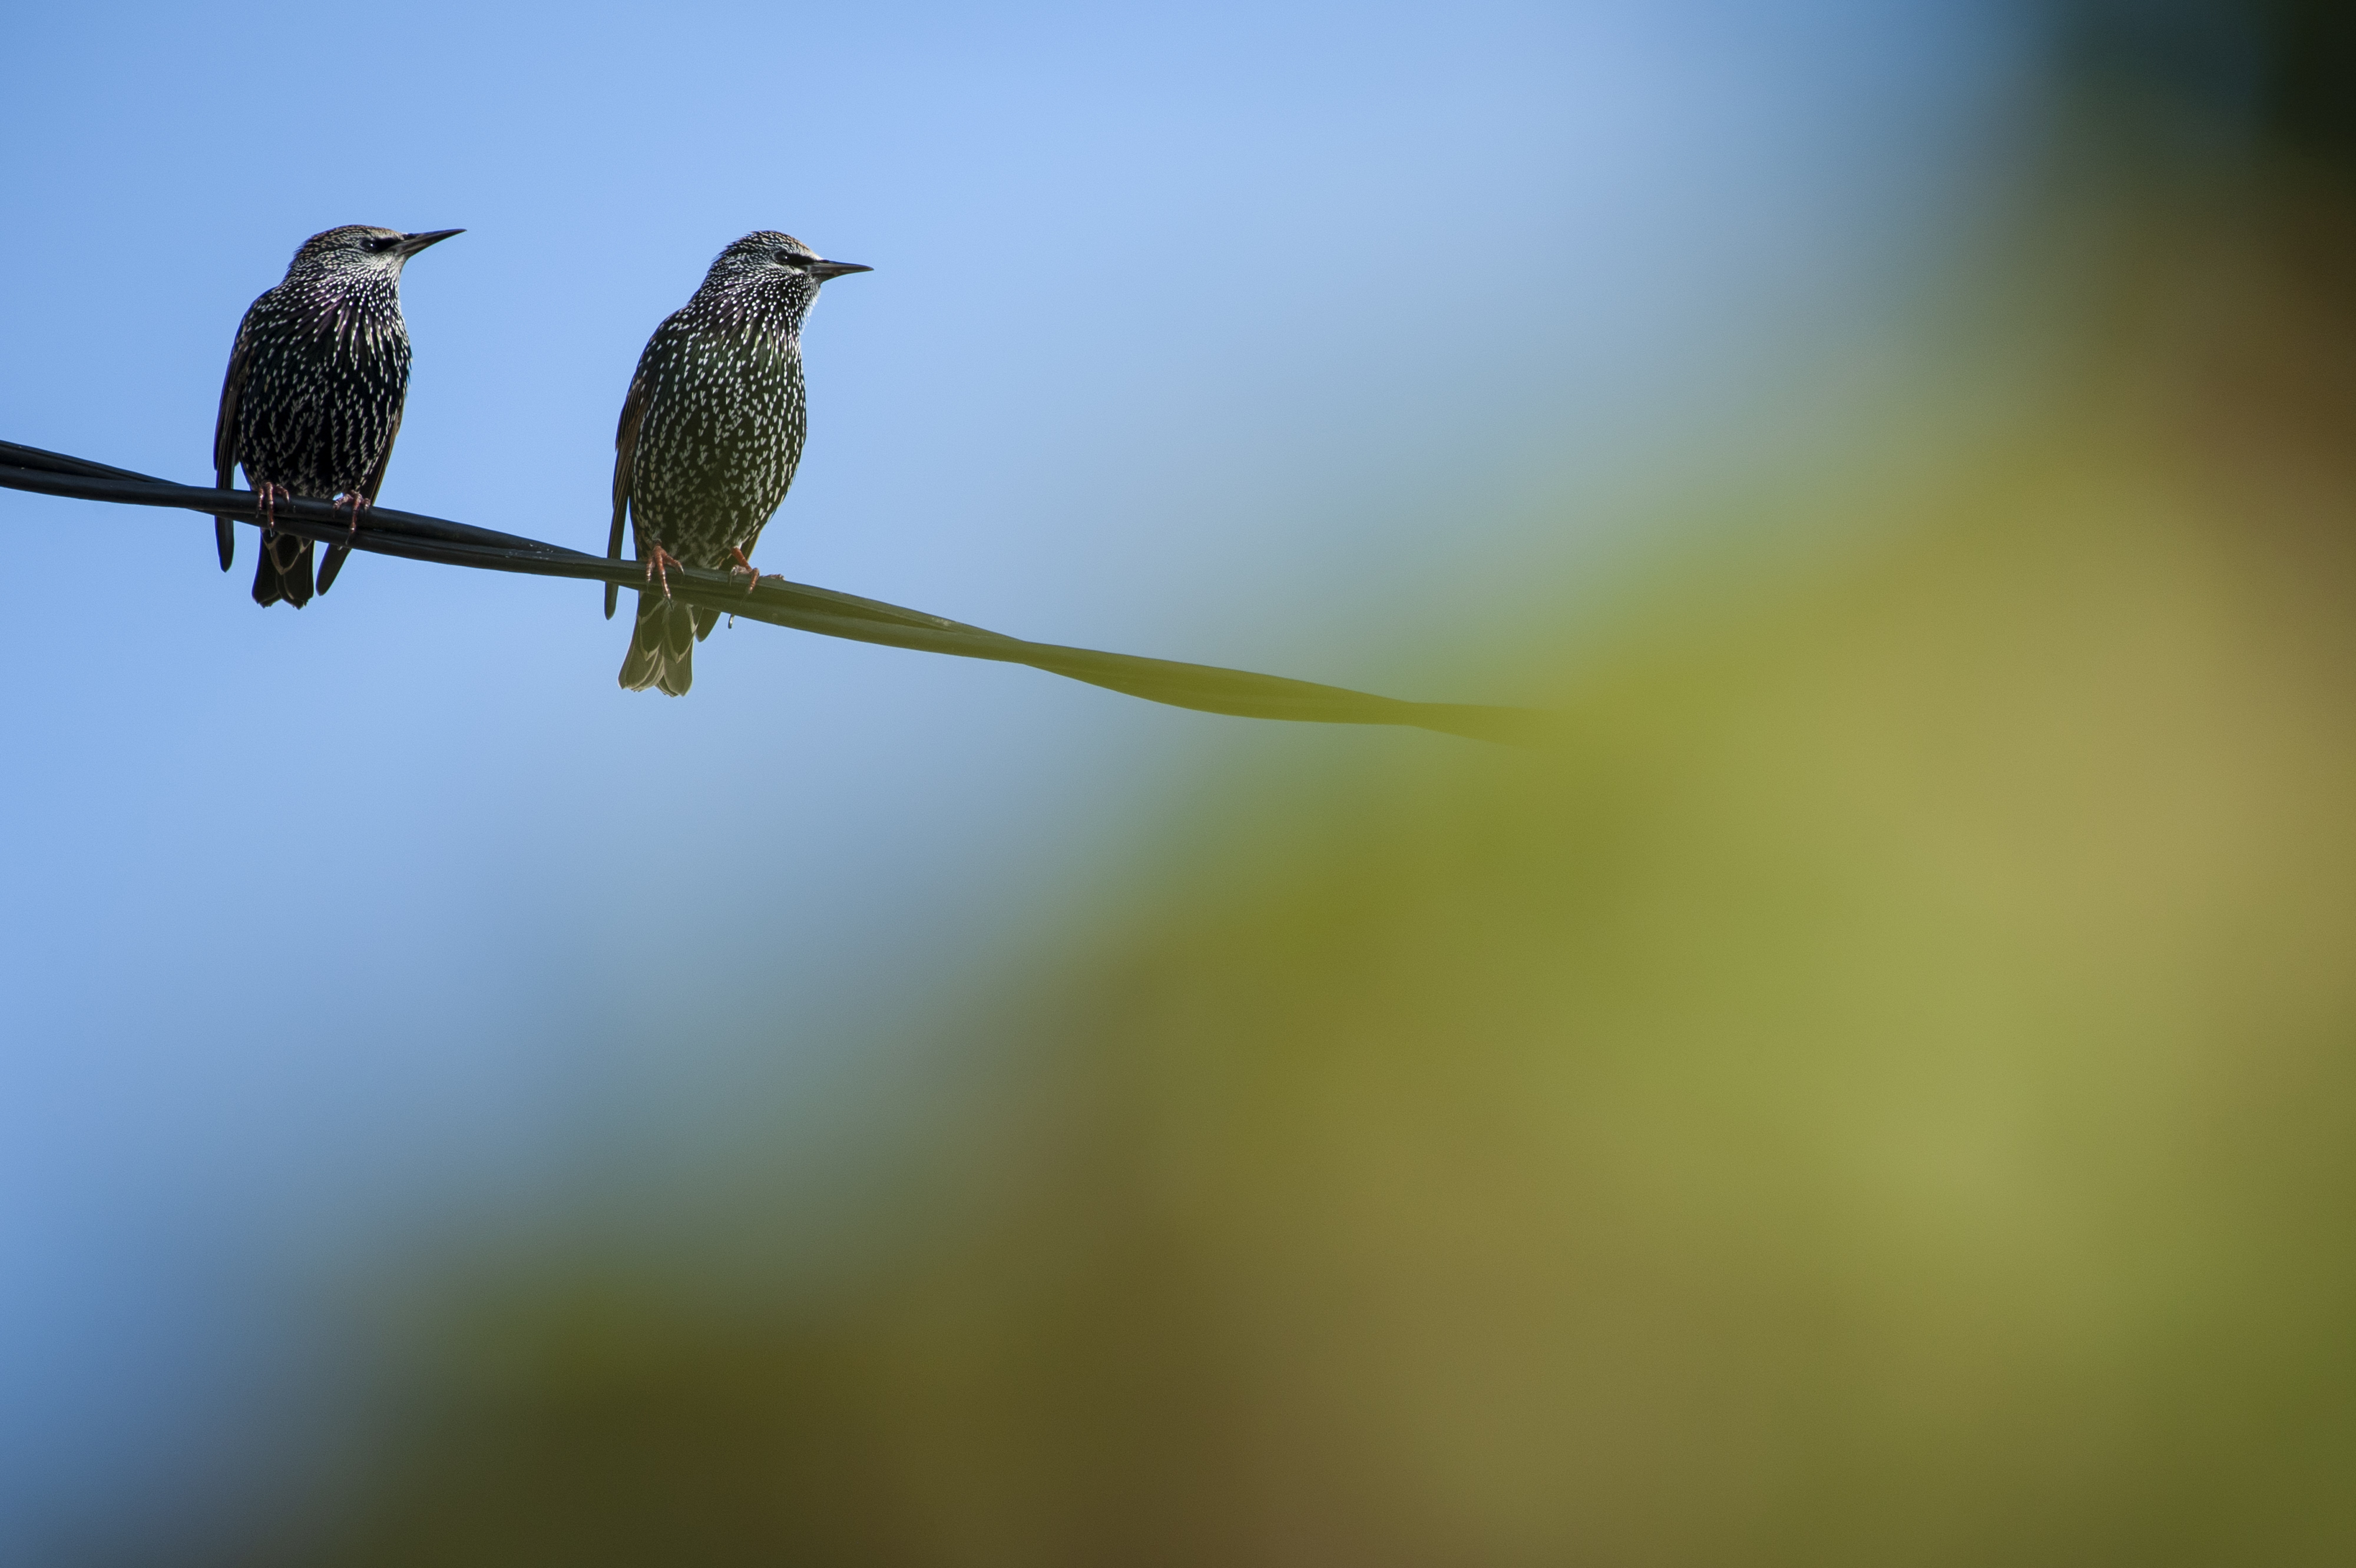 Two birds on a telephone cable